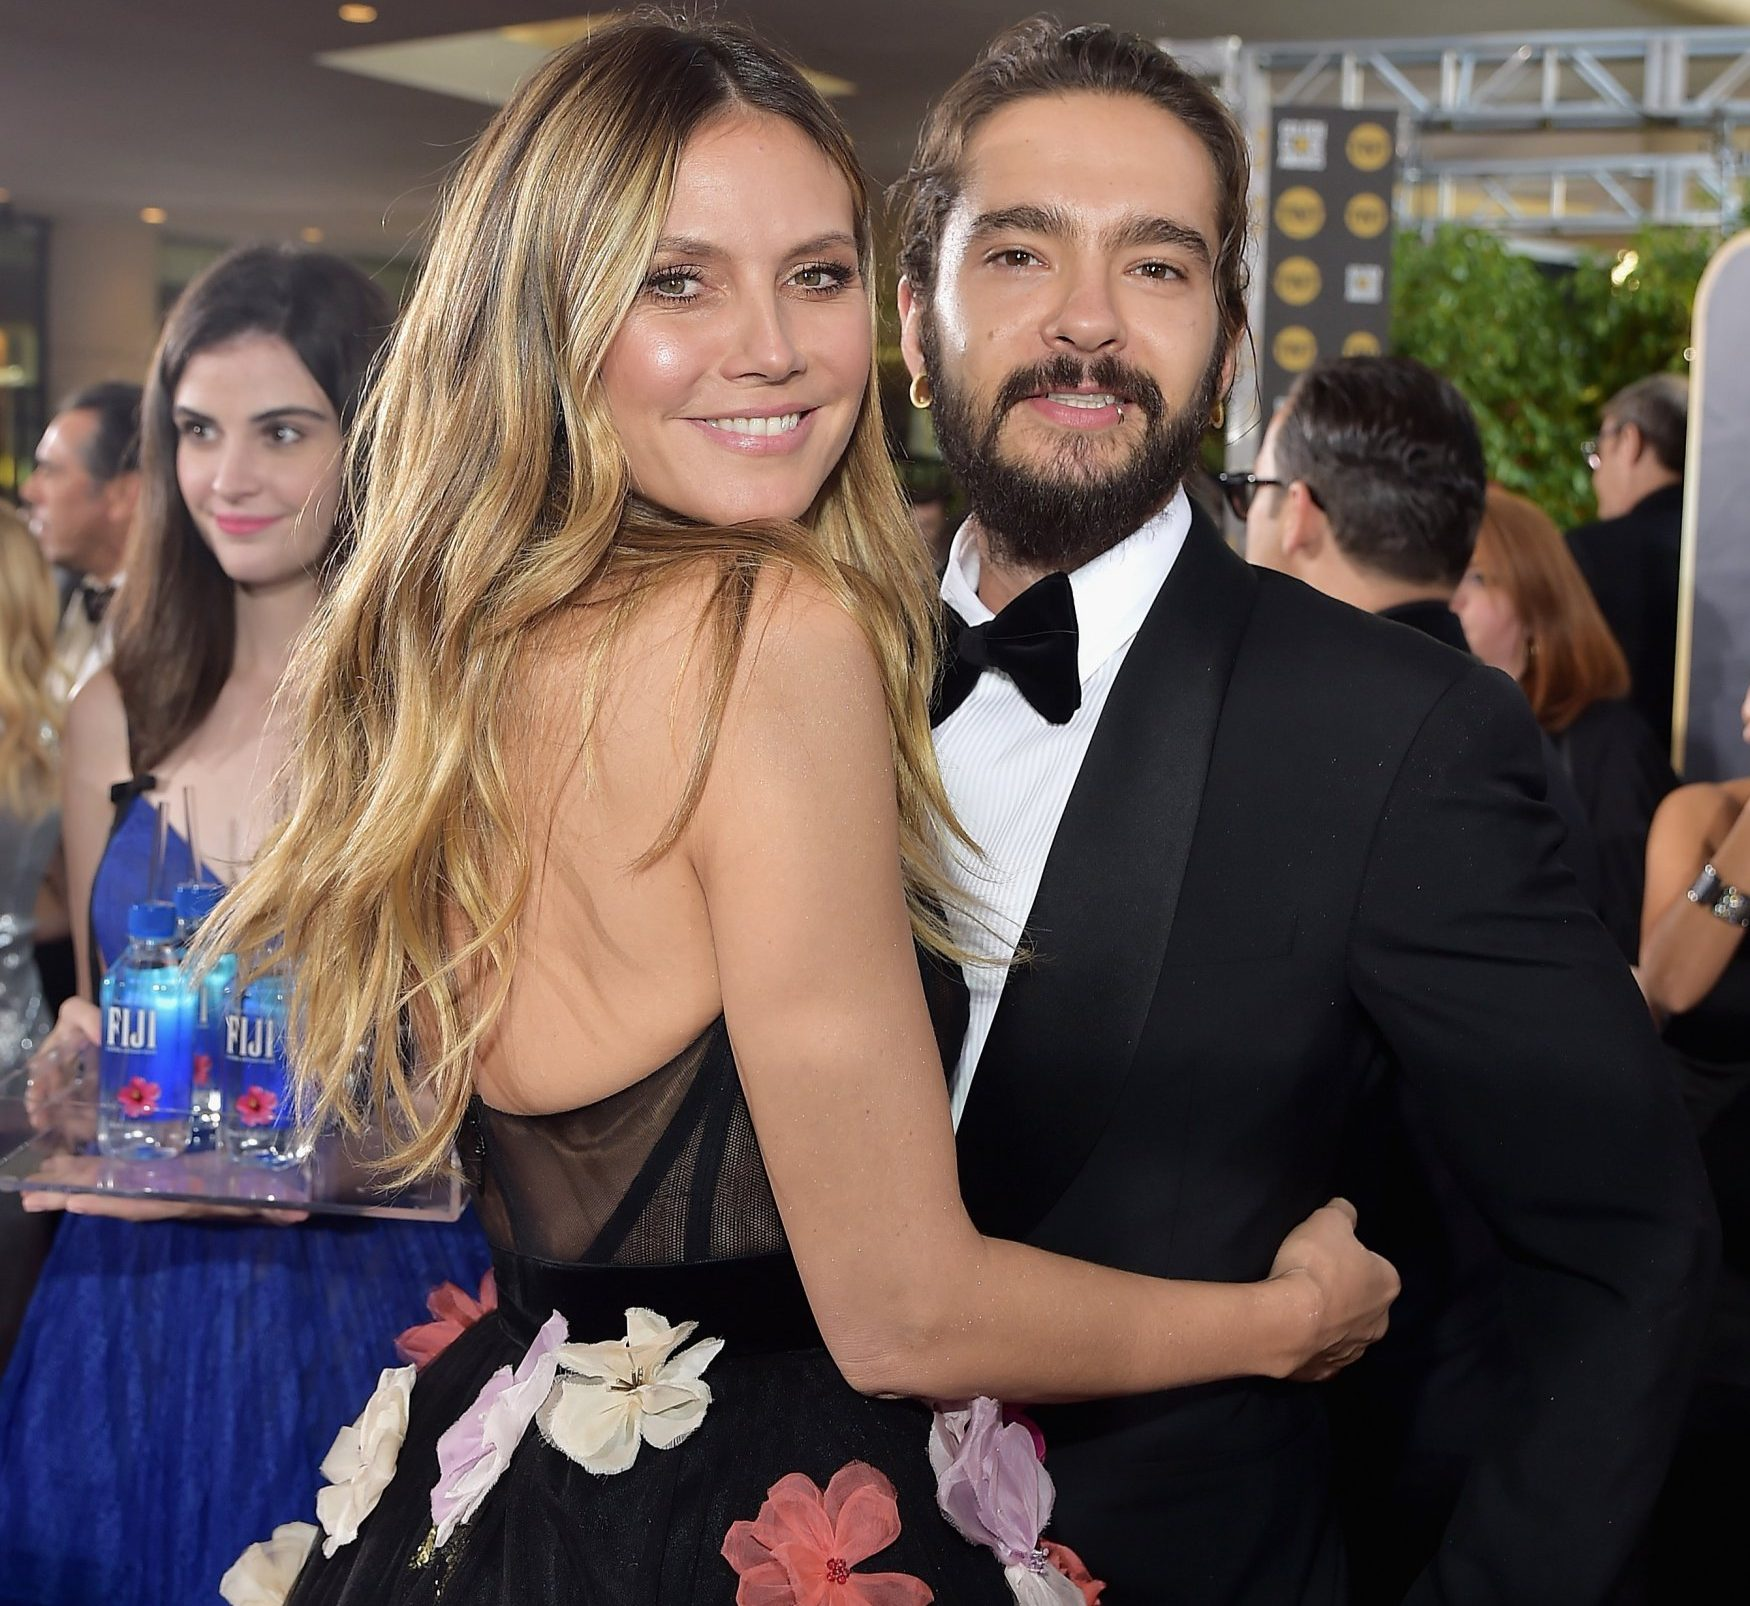 LOS ANGELES, CA - JANUARY 06: Heidi Klum (L) and Tom Kaulitz attend FIJI Water at the 76th Annual Golden Globe Awards on January 6, 2019 at the Beverly Hilton in Los Angeles, California. (Photo by Stefanie Keenan/Getty Images for FIJI Water)